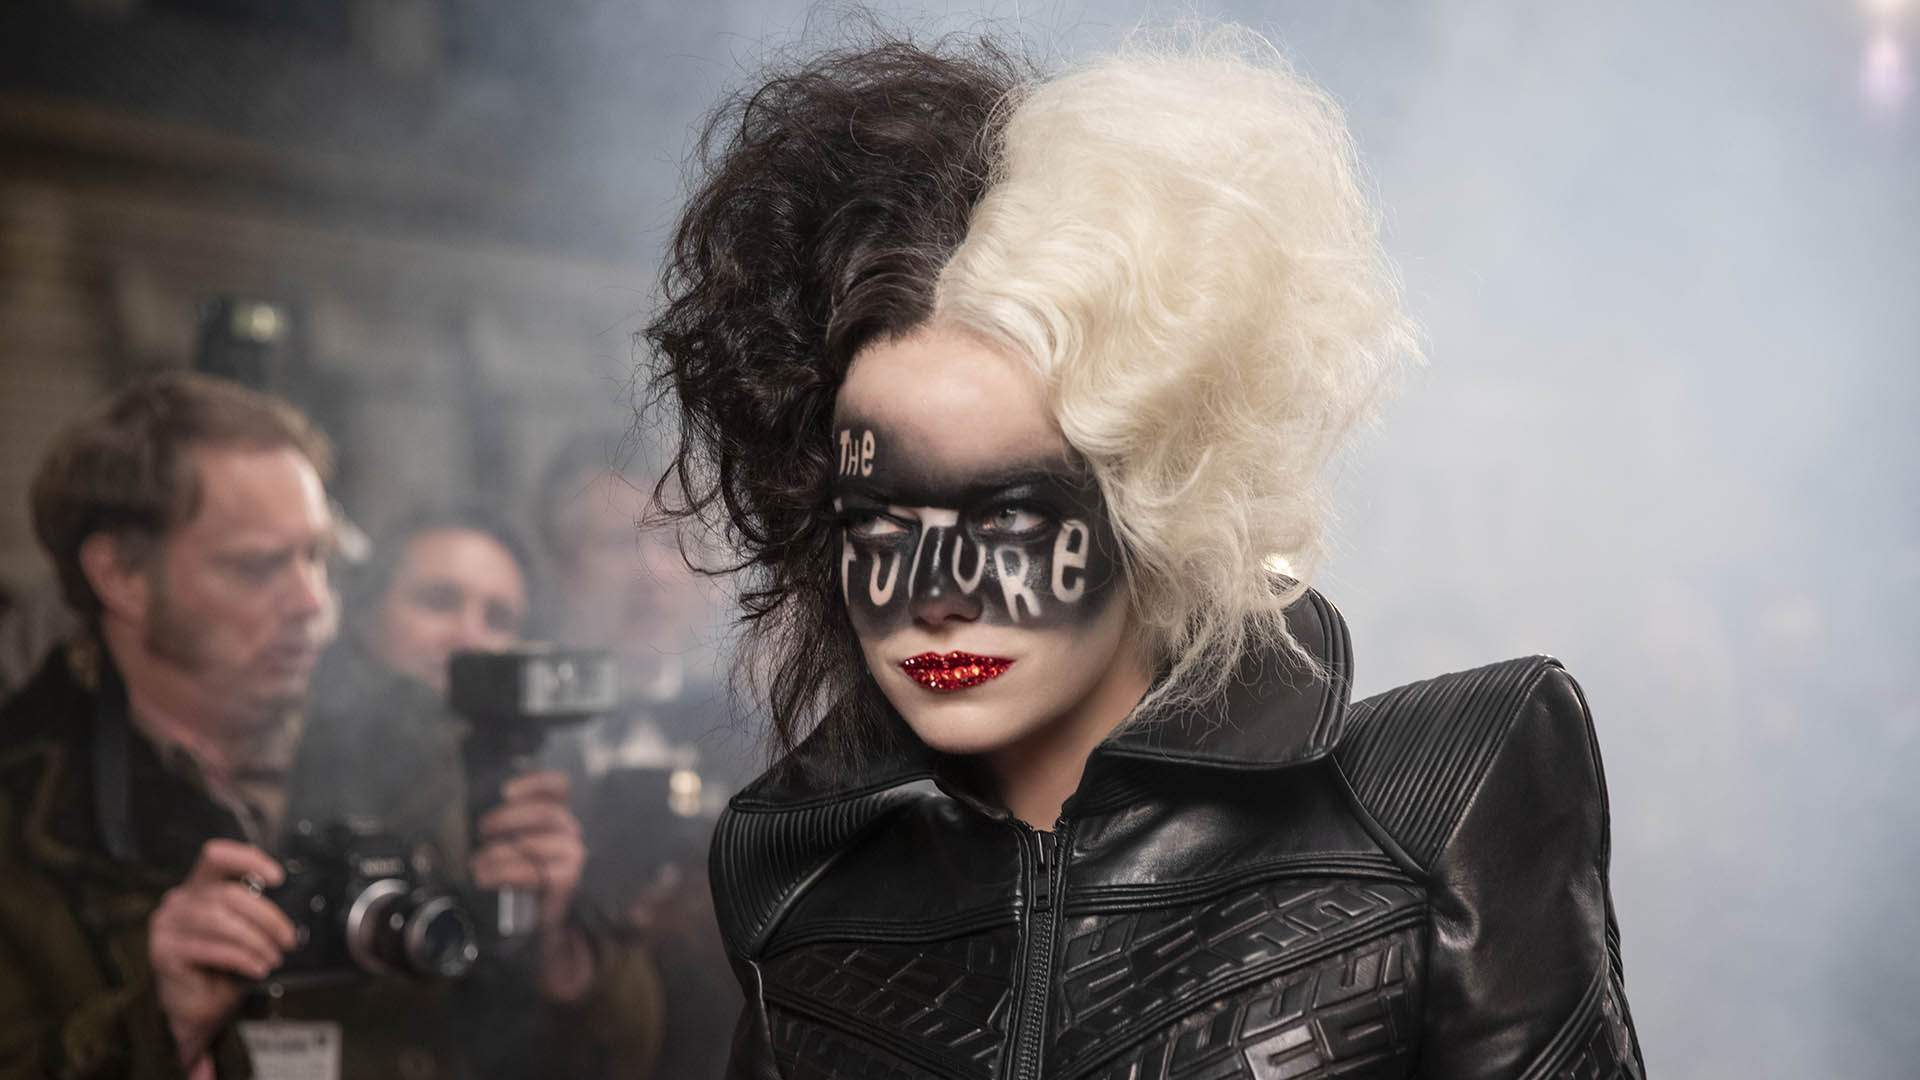 The New Trailer for '101 Dalmatians' Spinoff 'Cruella' Teases Haute Couture Chaos in the 70s